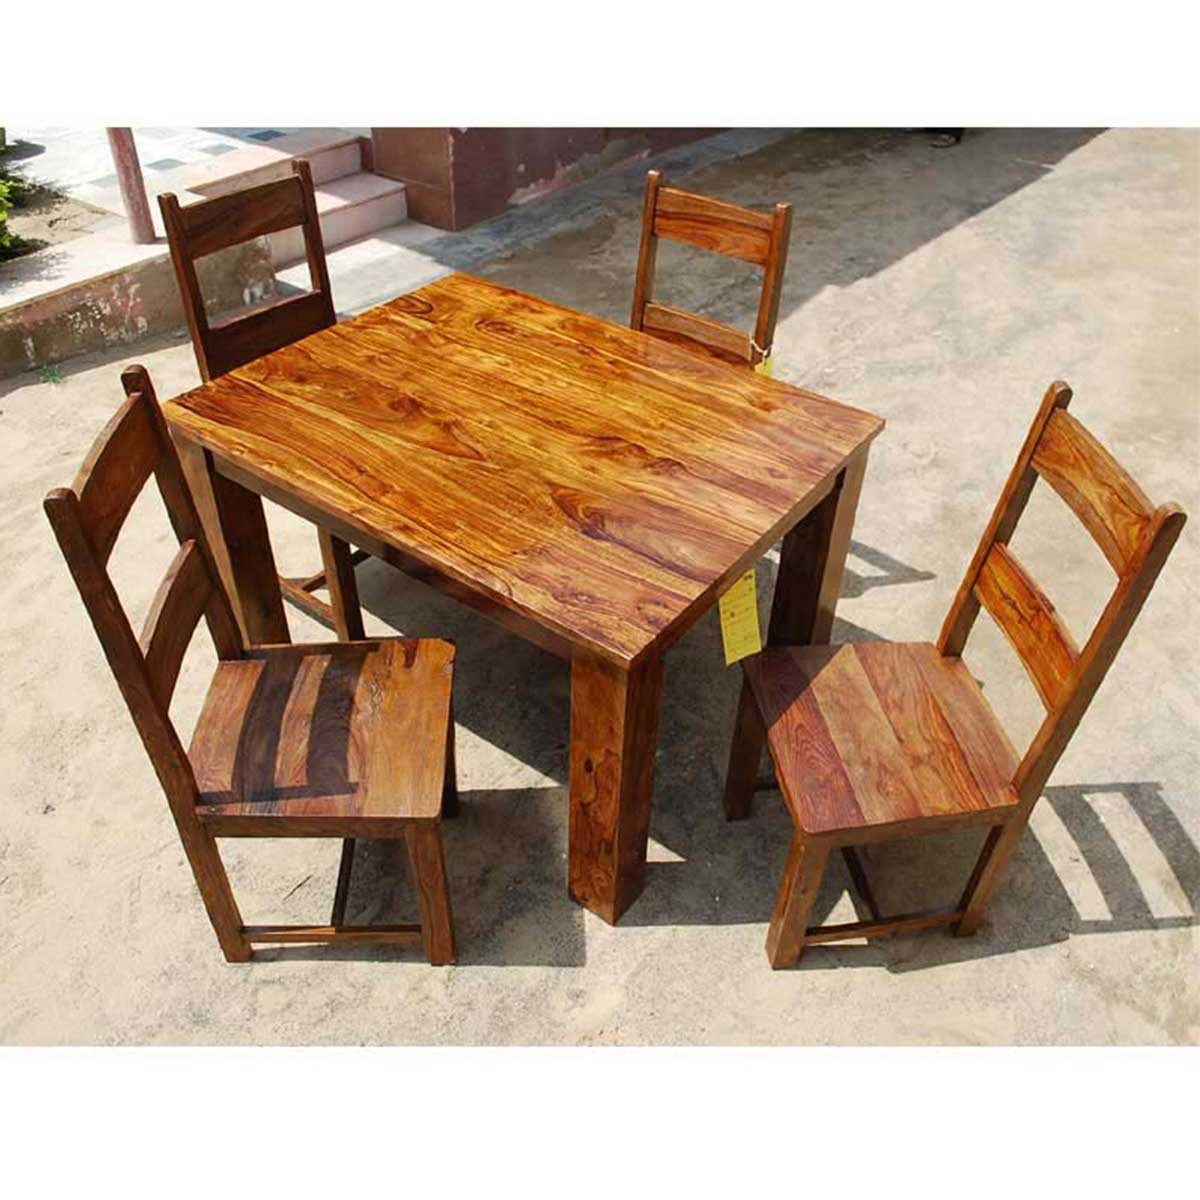 Dallas Ranch Solid Wood Rustic Dining Table Chairs Hutch Set: Rustic Mission Santa Cruz Solid Wood Dining Room Set For 4